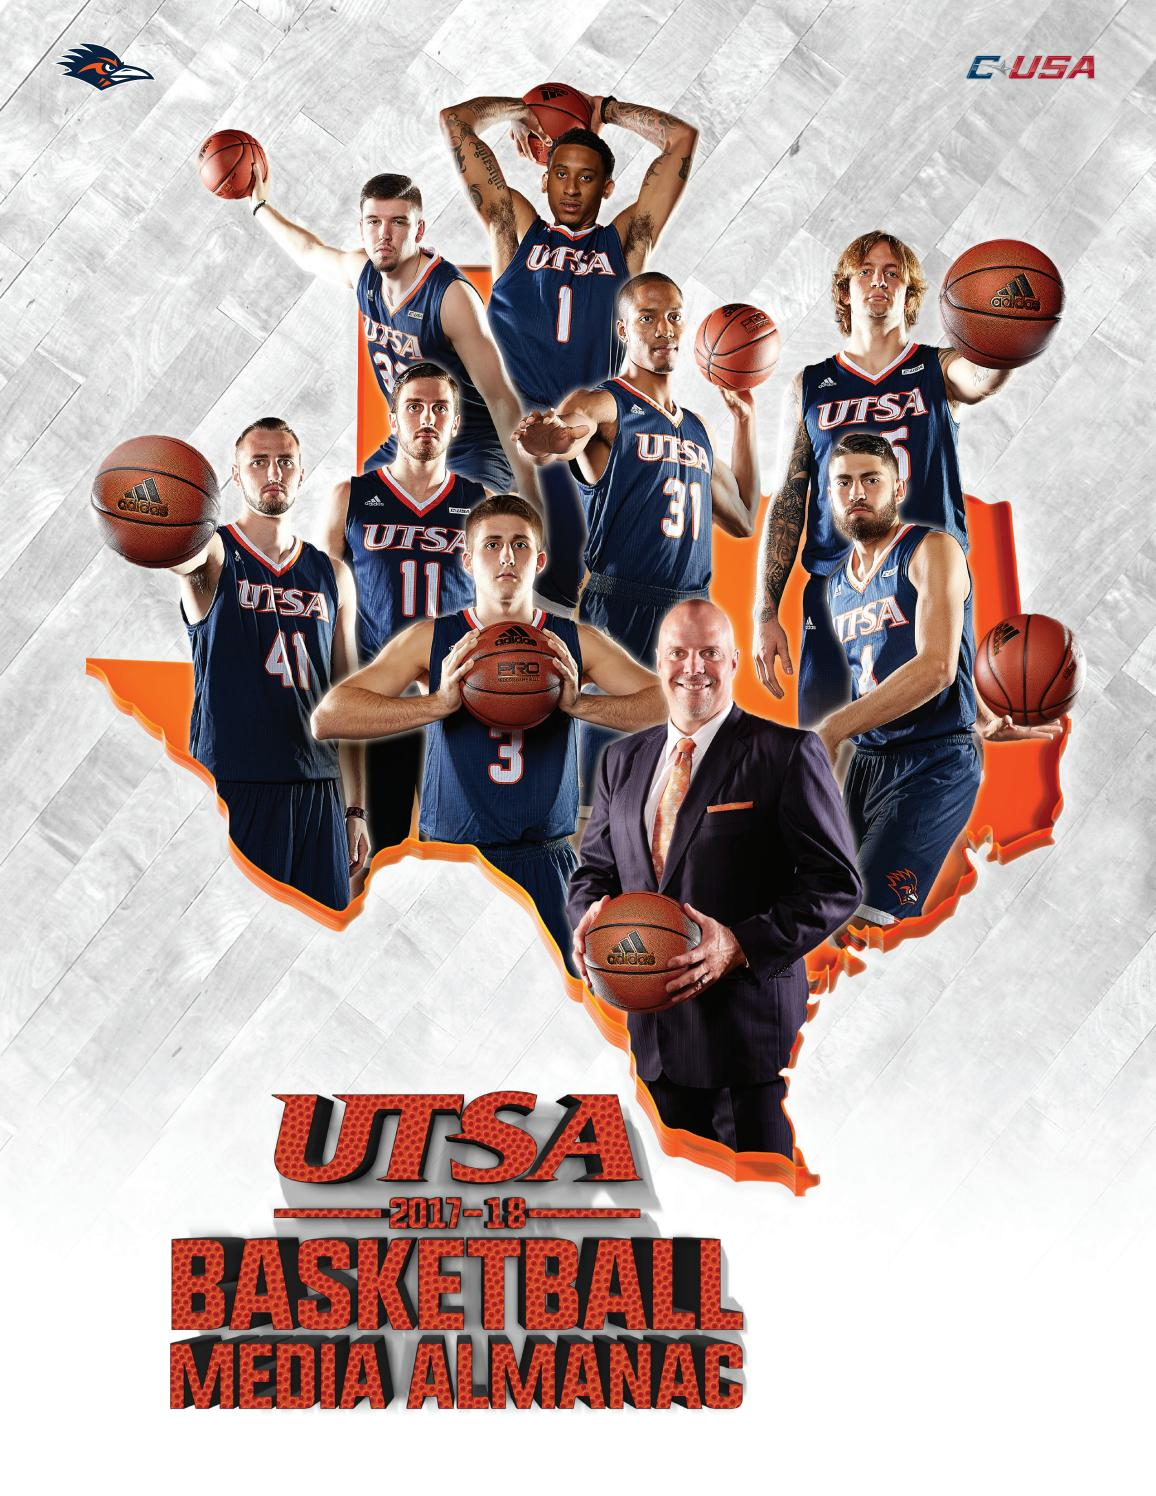 d94993c297c 2017-18 UTSA Men s Basketball Almanac by UTSA Athletics Communications -  issuu